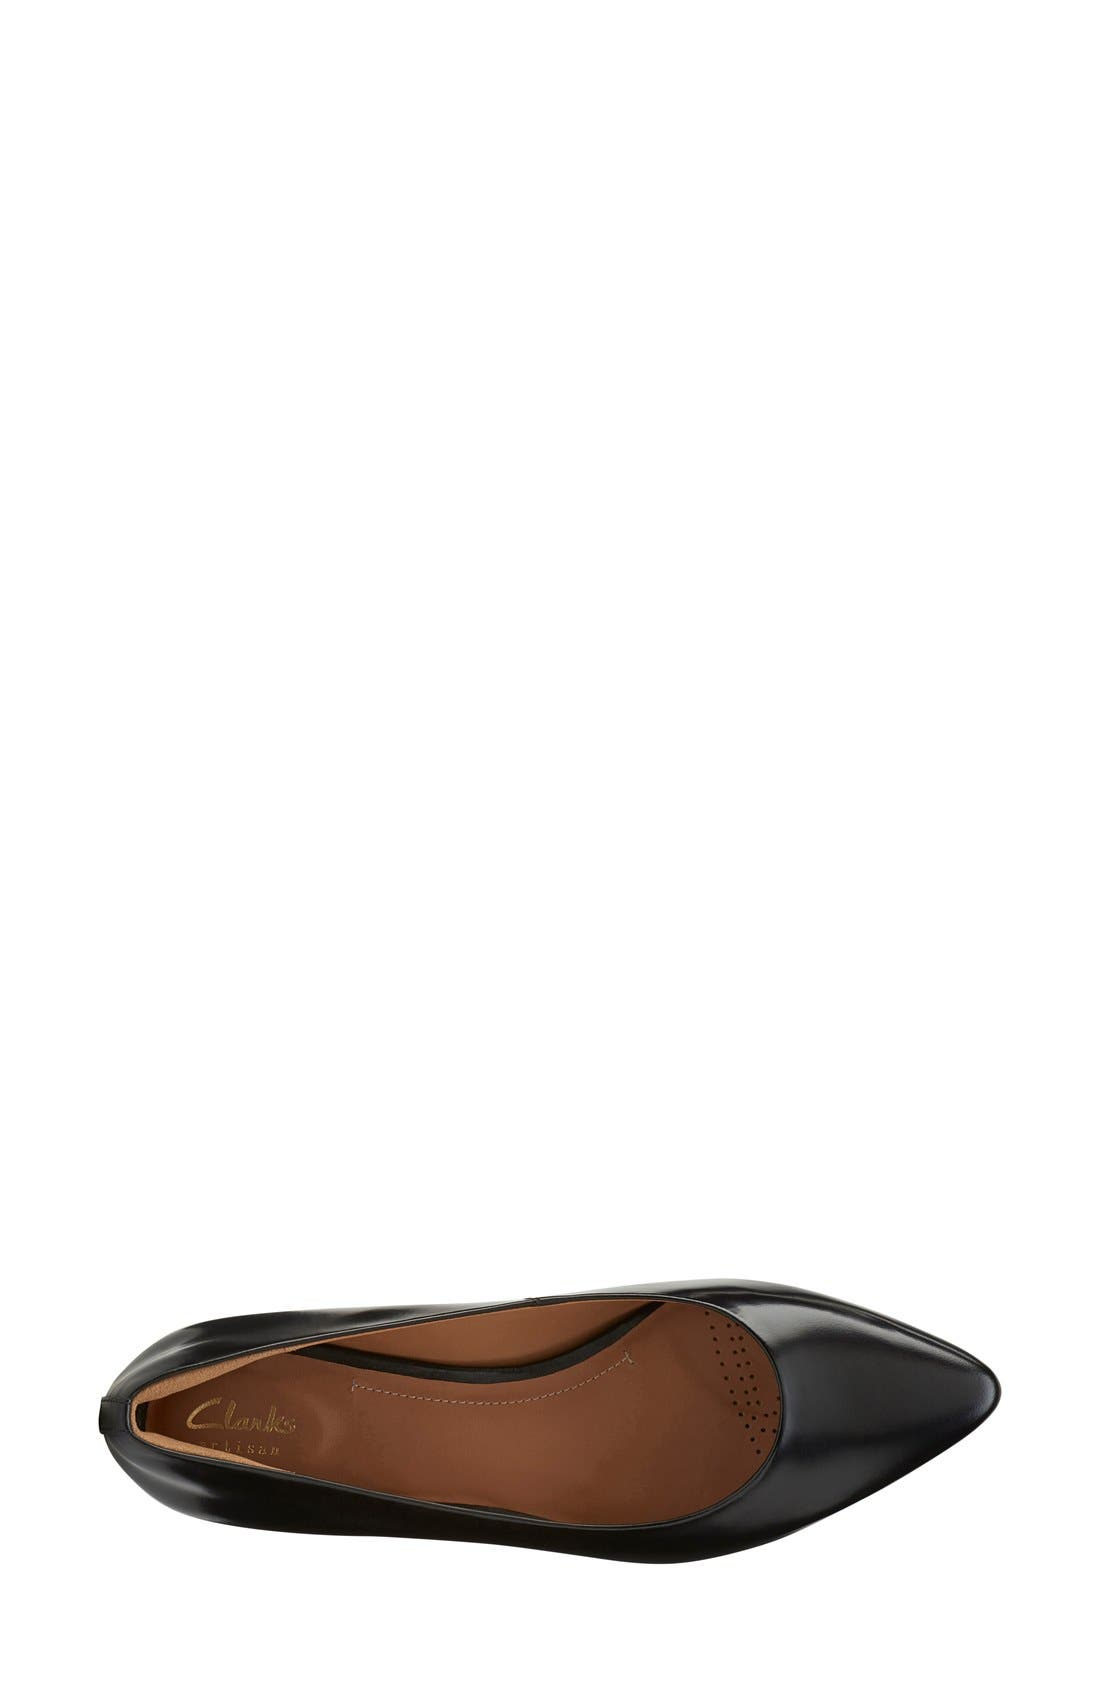 CLARKS<SUP>®</SUP>,                             'Corabeth Abby' Pointy Toe Flat,                             Alternate thumbnail 3, color,                             003